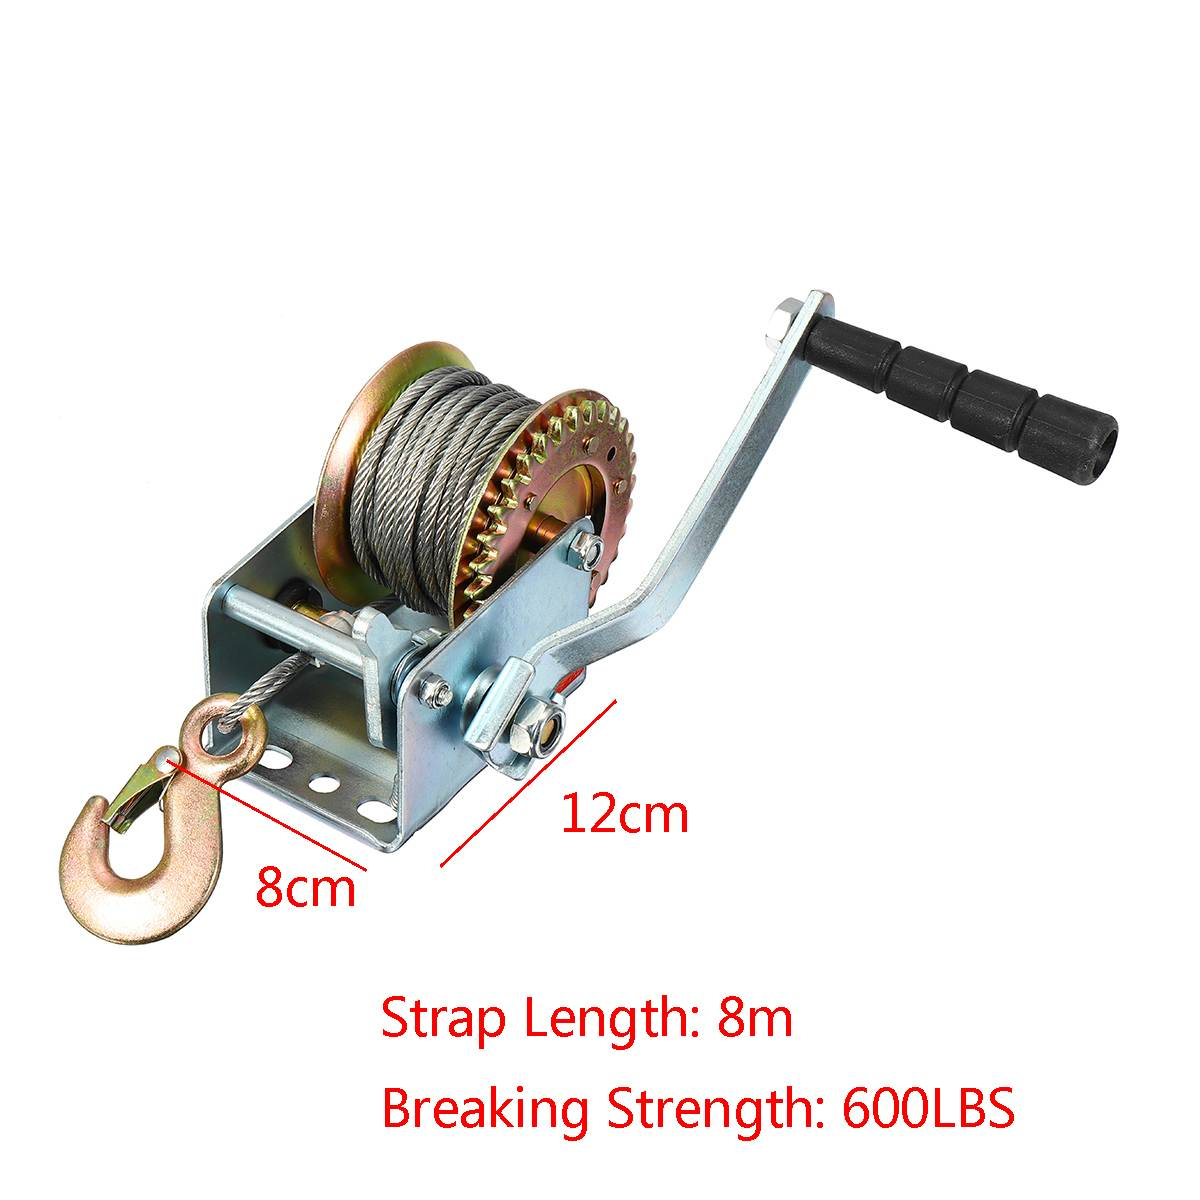 600lbs Boat Truck Auto Portable Hand Manual Winch With Webbing Sling, Hand Tool Lifting Sling 8M Steel Cable